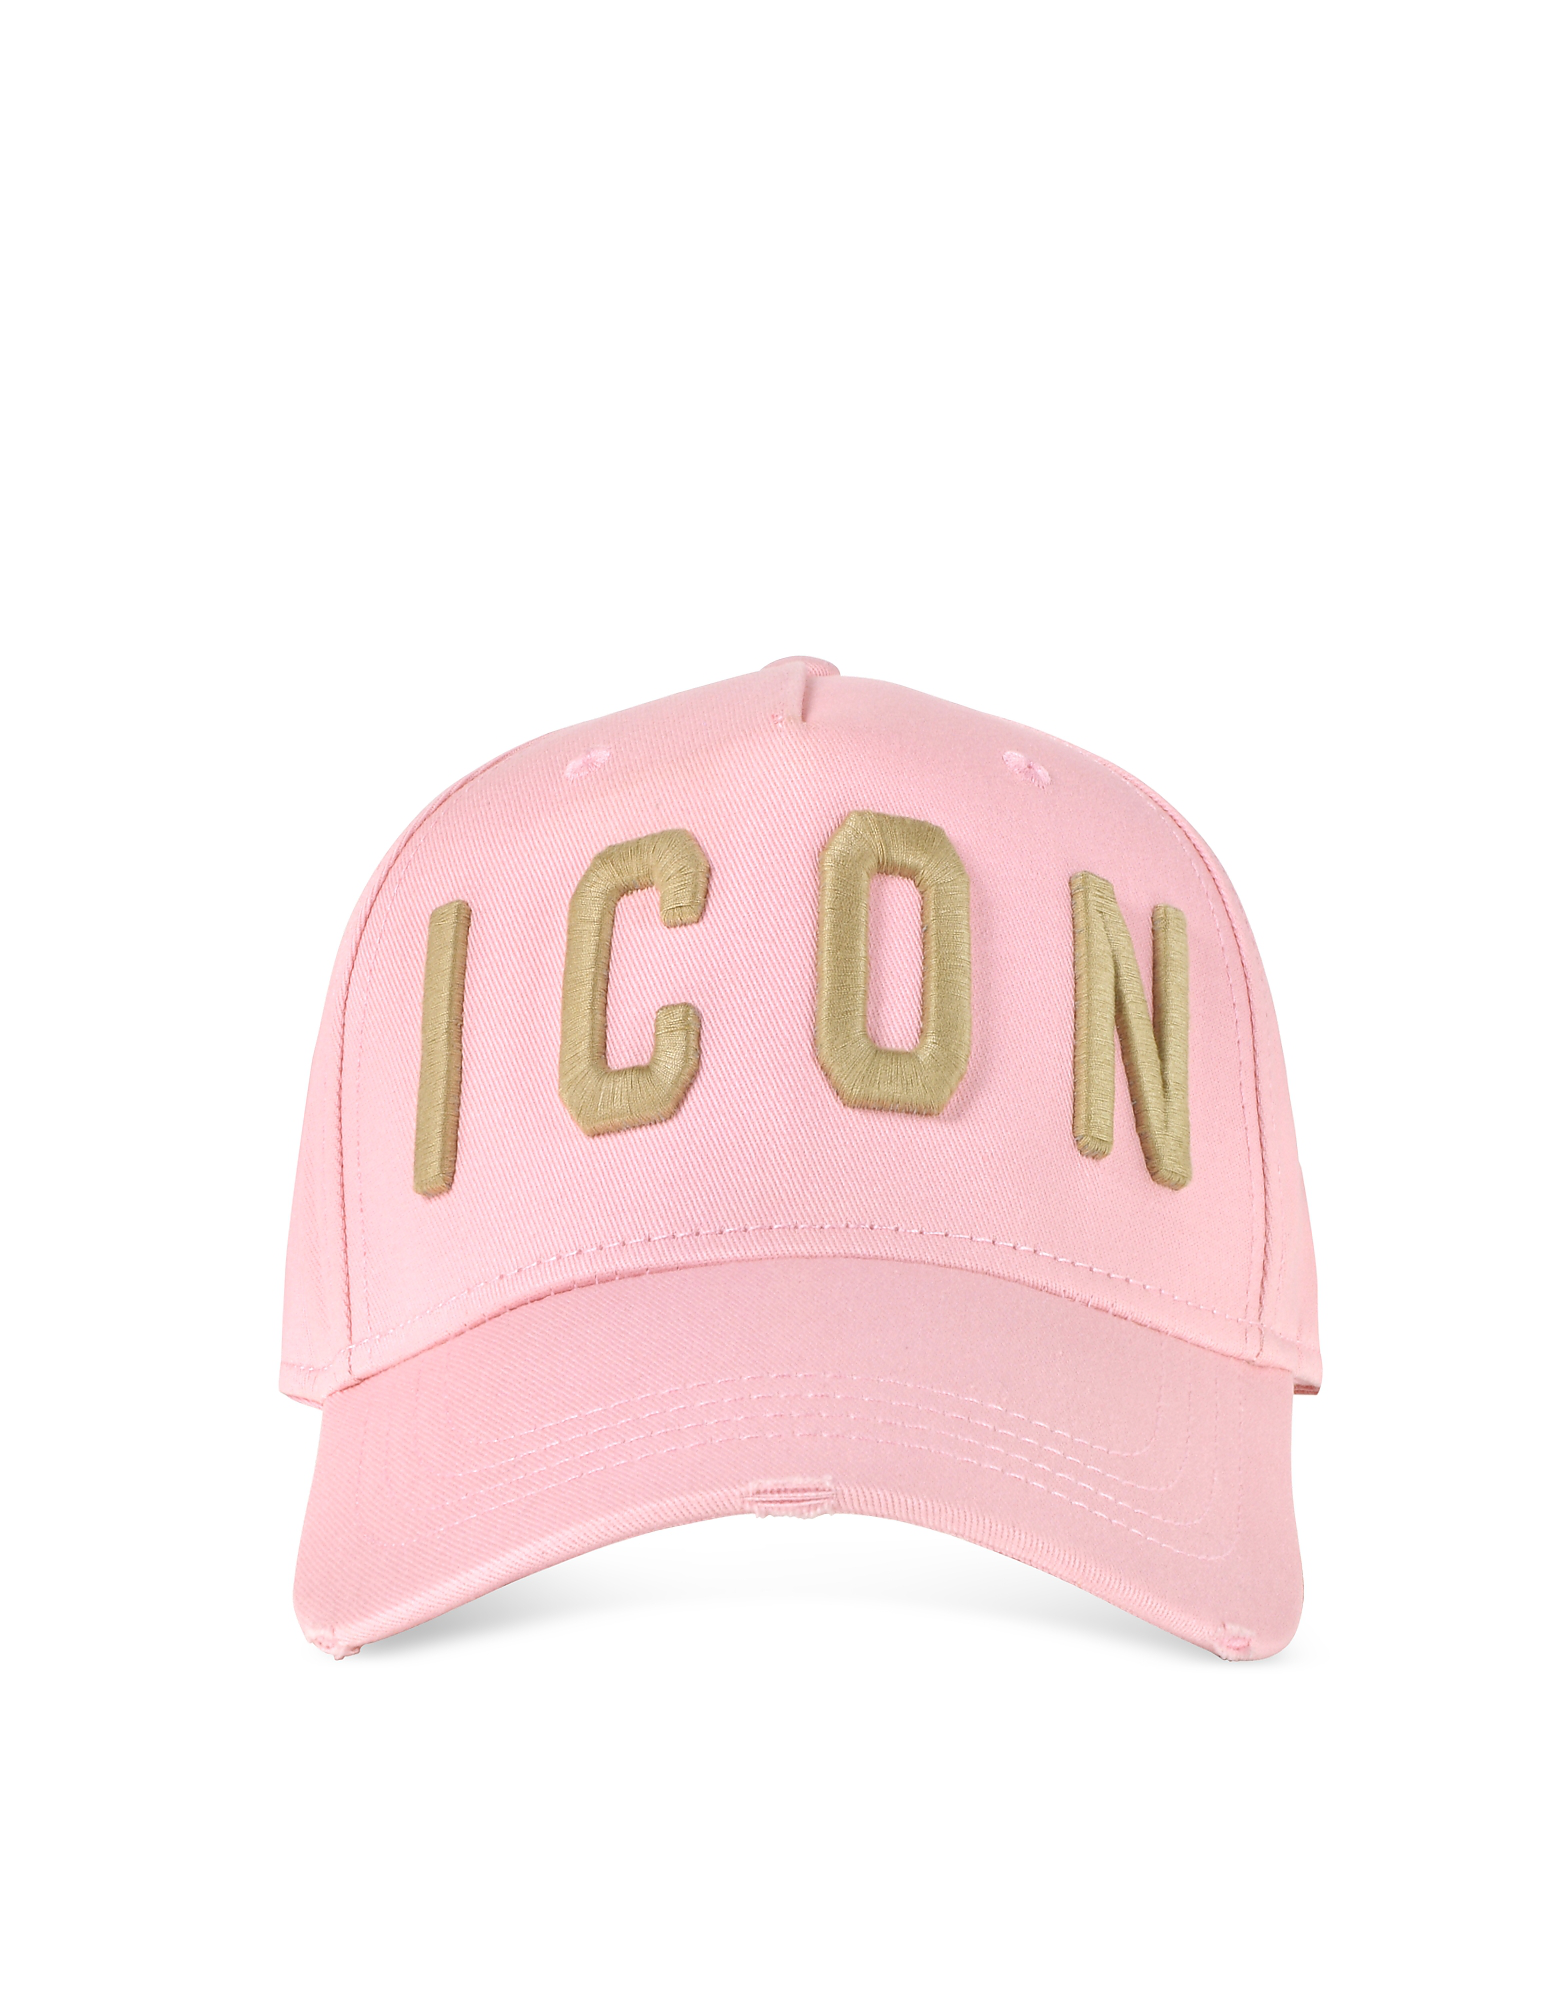 80fea4068 Embroidered Icon Logo Gabardine Baseball Cap in Pink/Gold